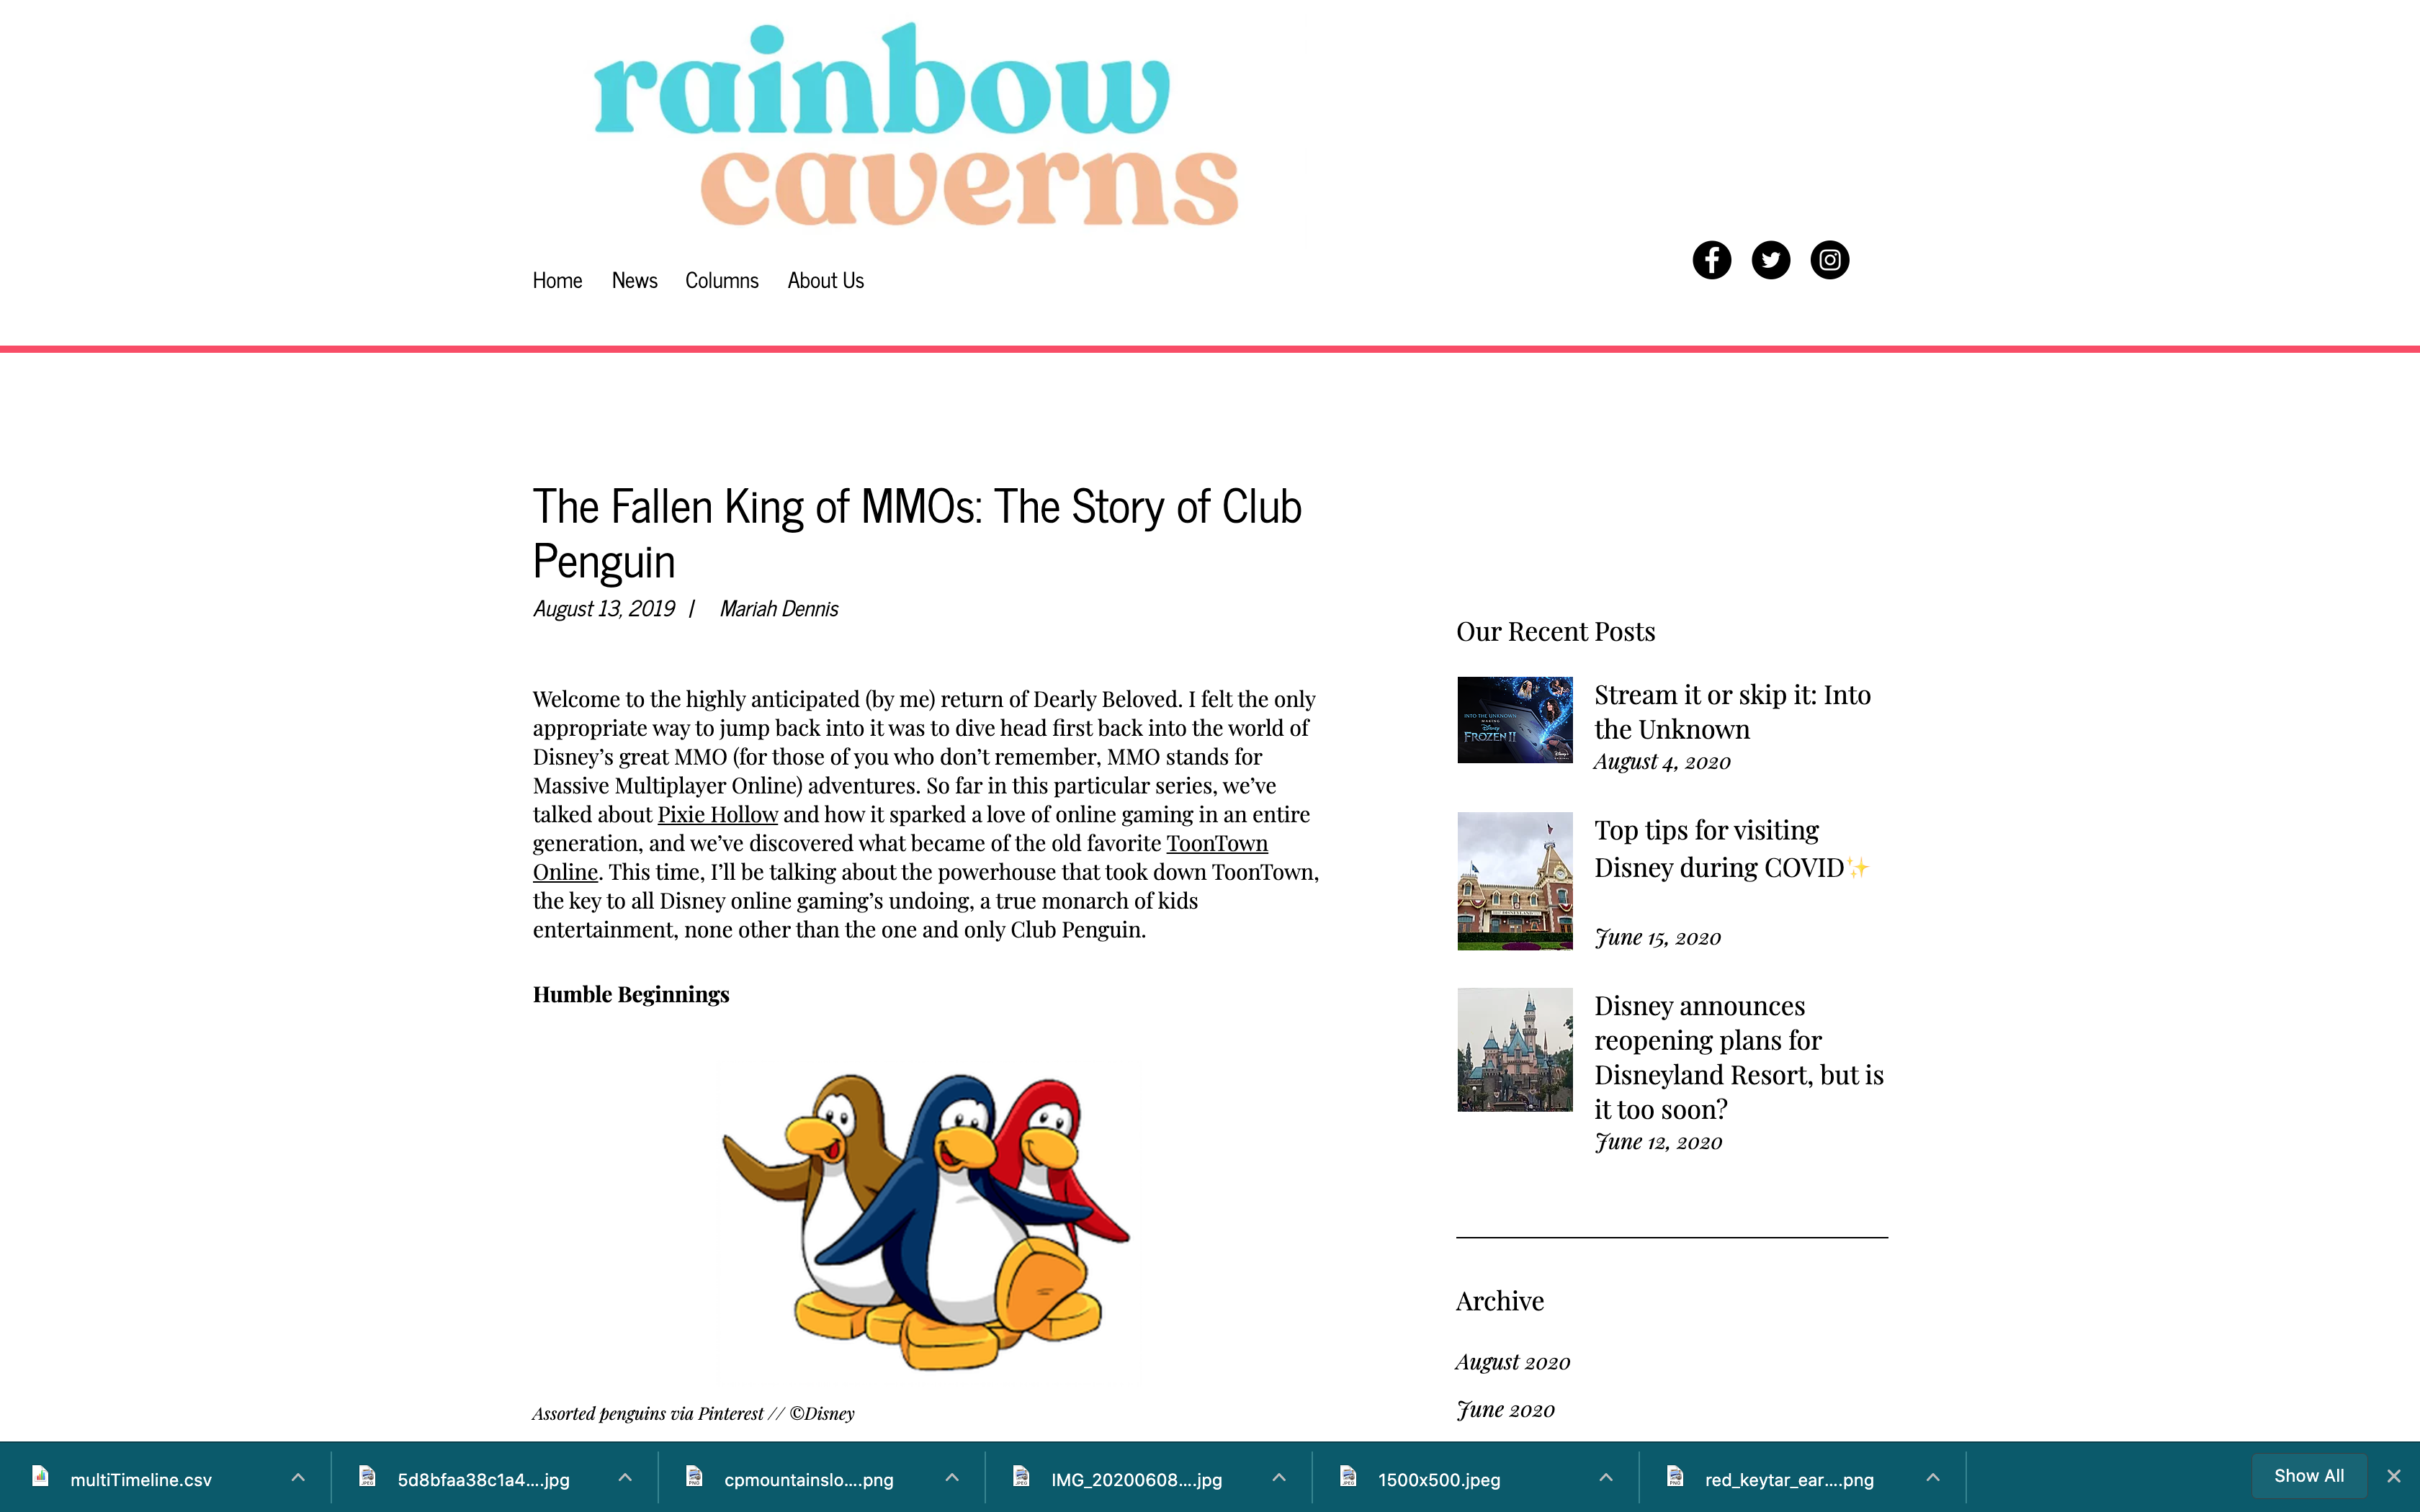 The Fallen King of MMOs: Club Penguin